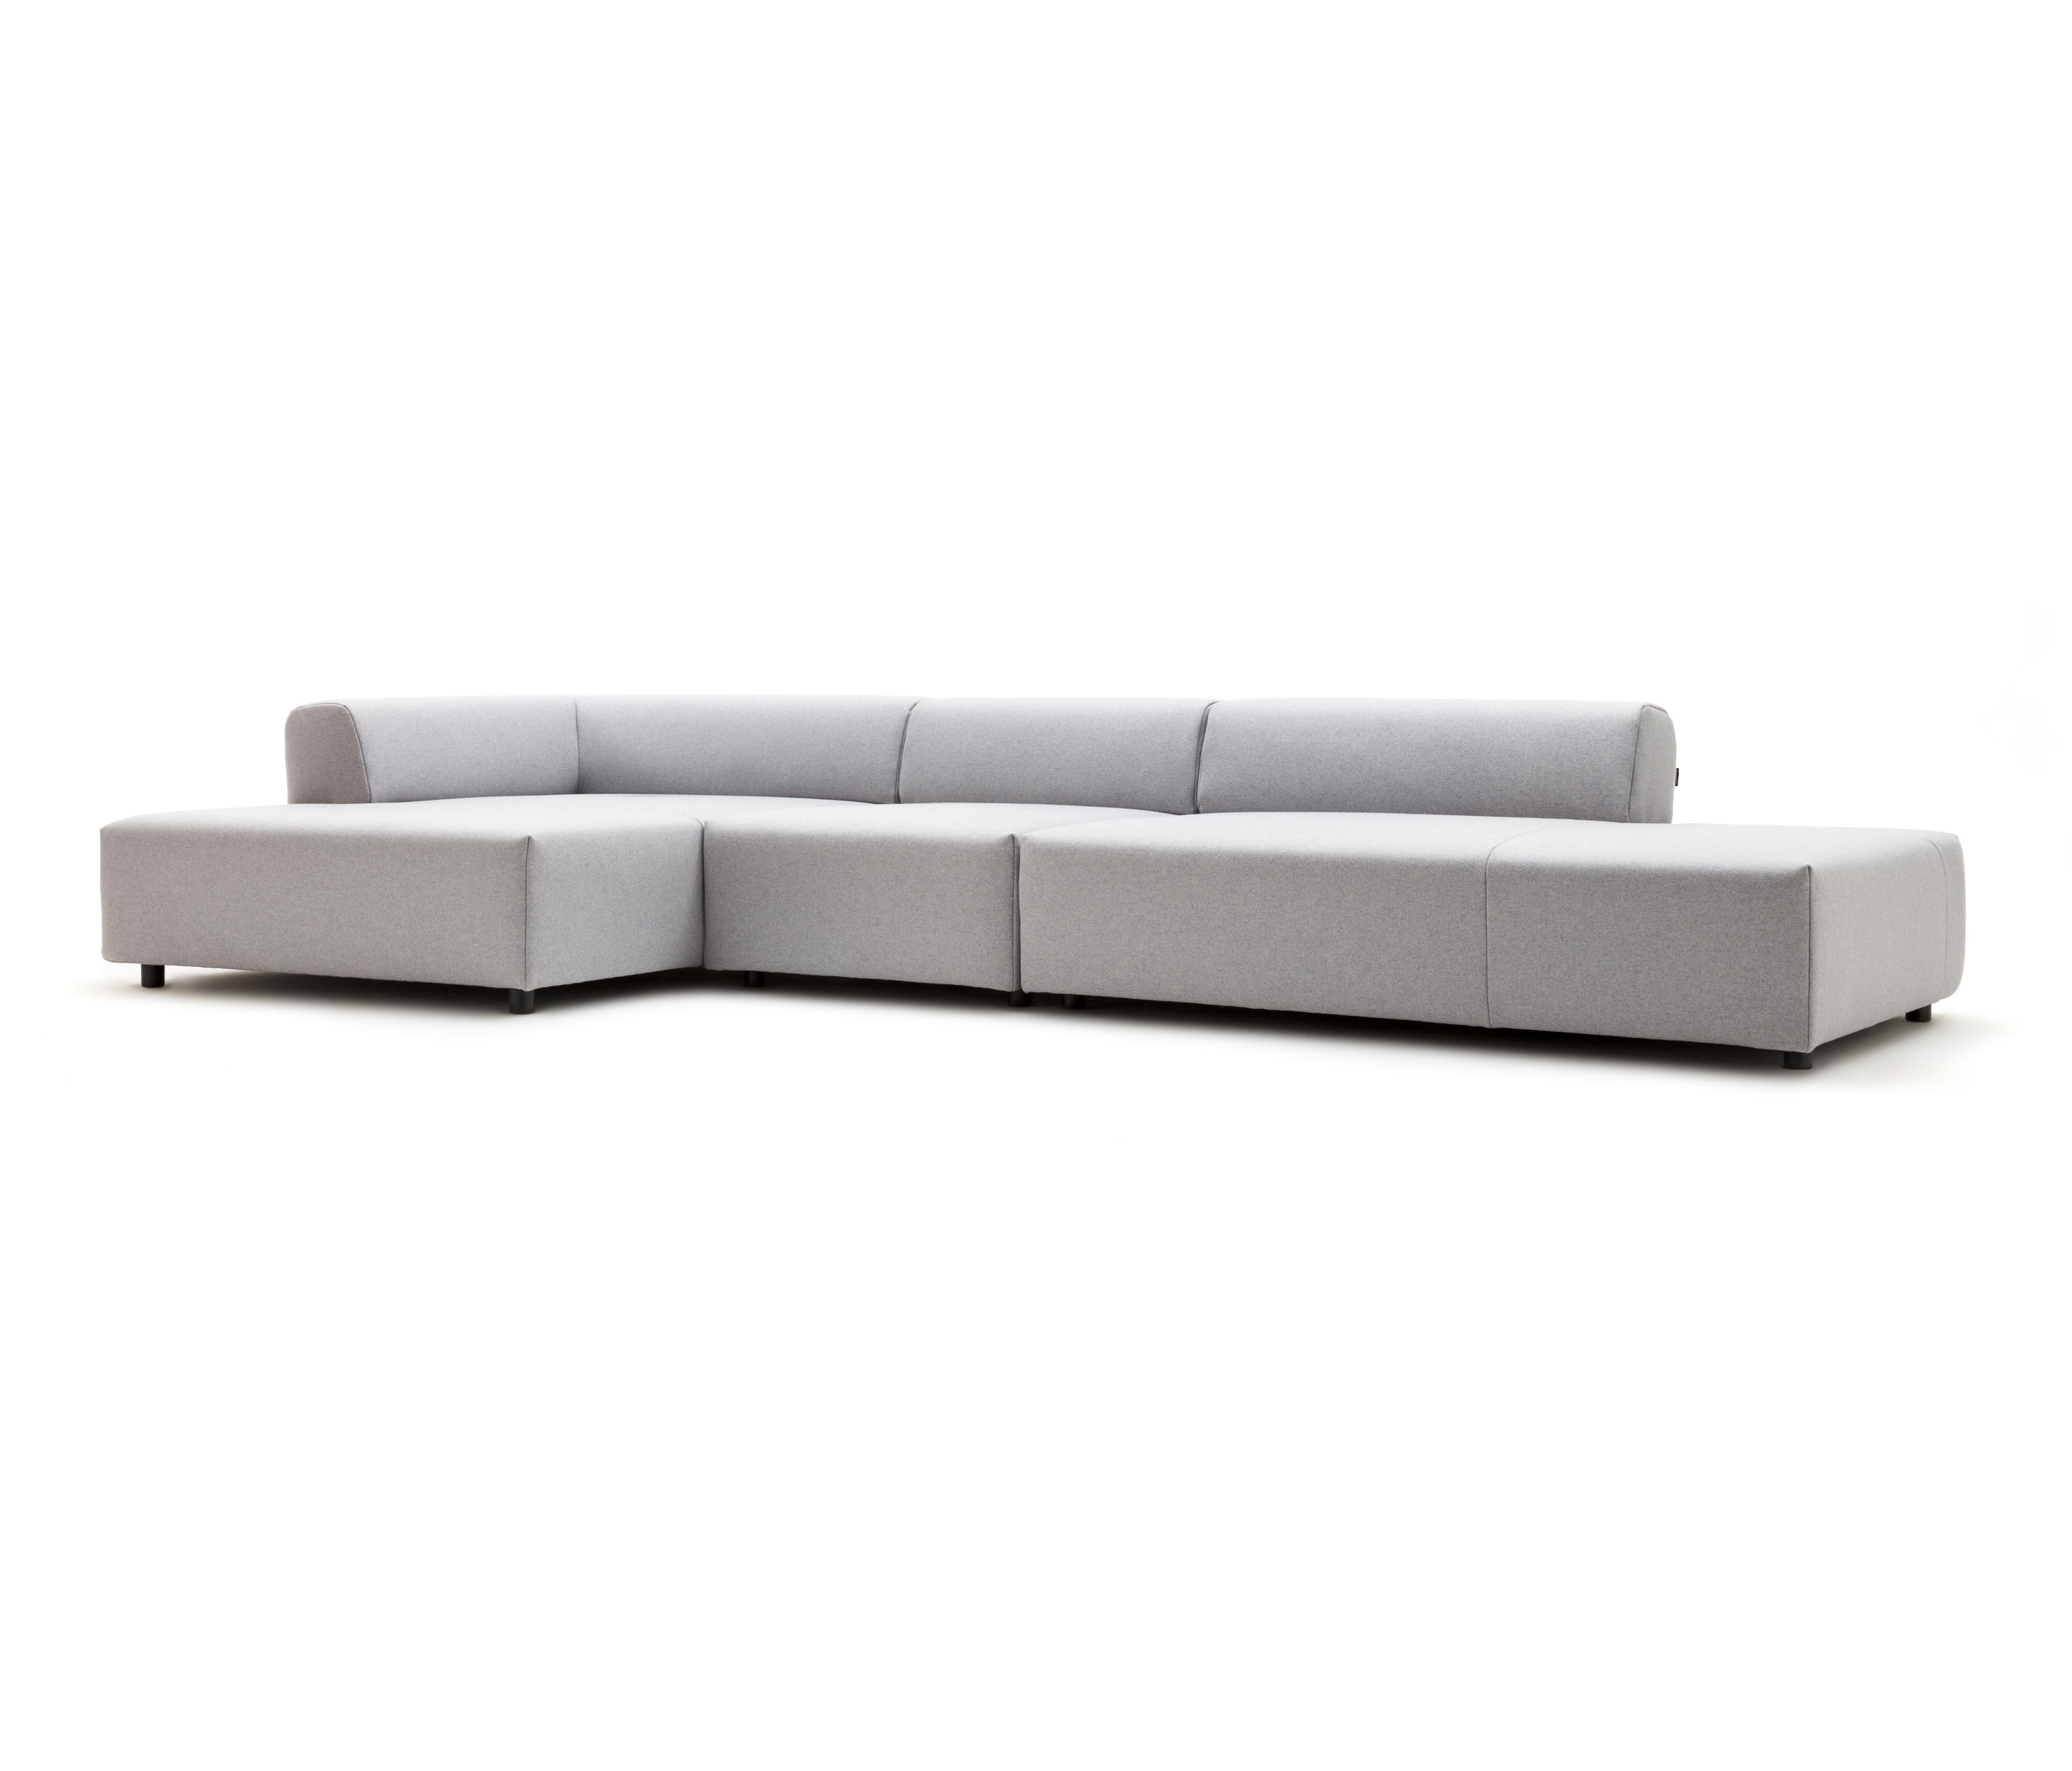 Freistil Sofa Freistil 184 - Armchairs From Freistil | Architonic